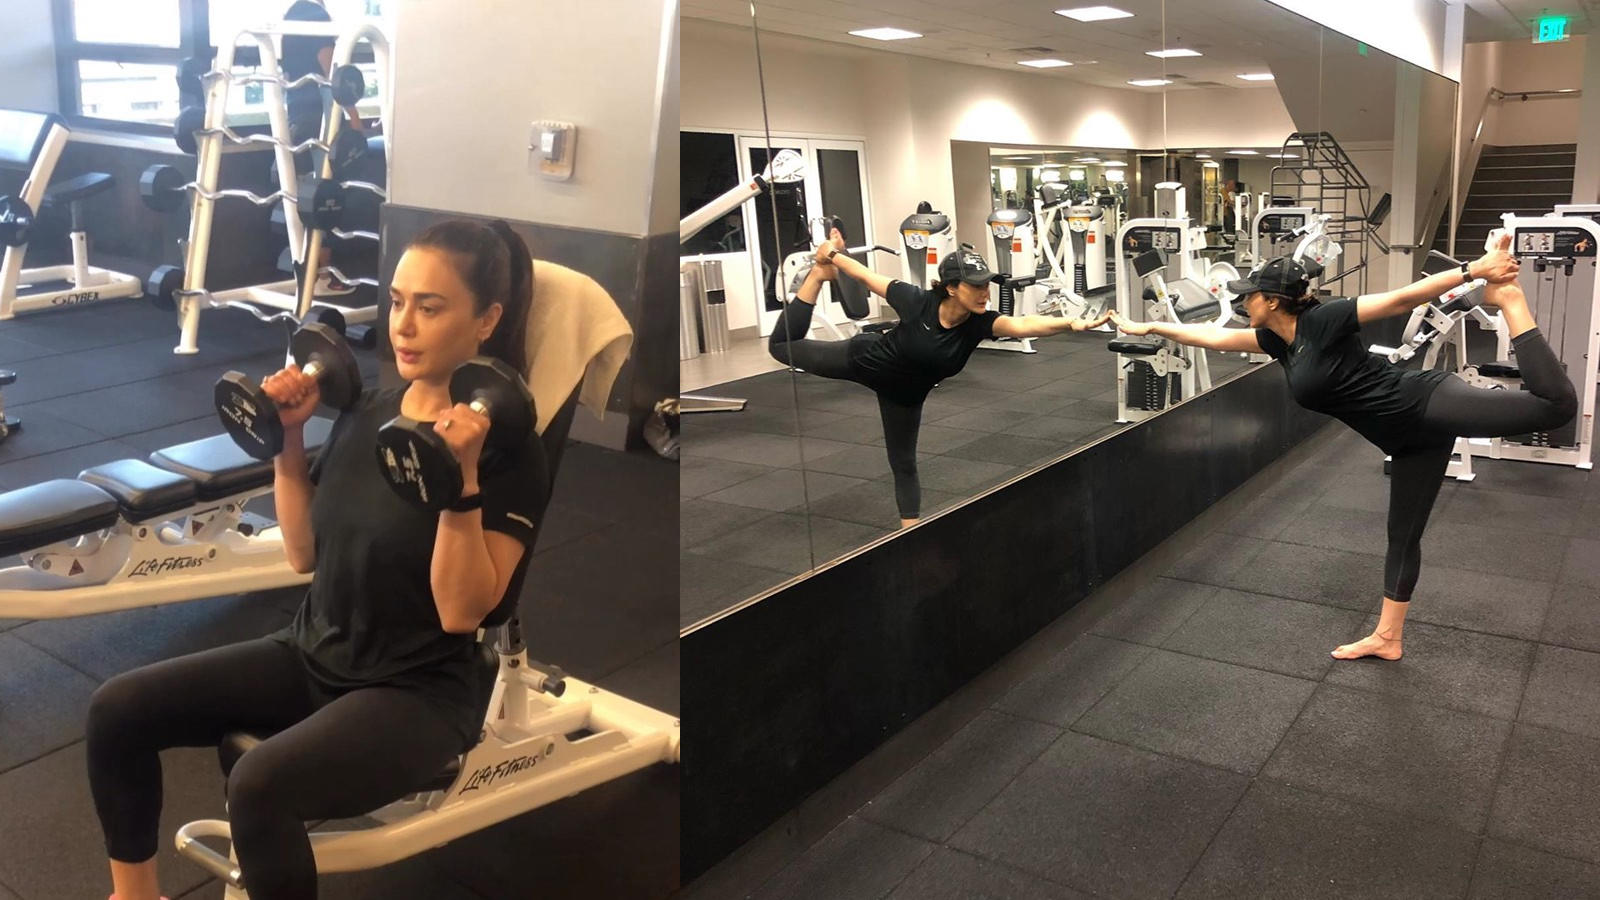 Preity Zinta's latest workout video gives serious fitness goals!